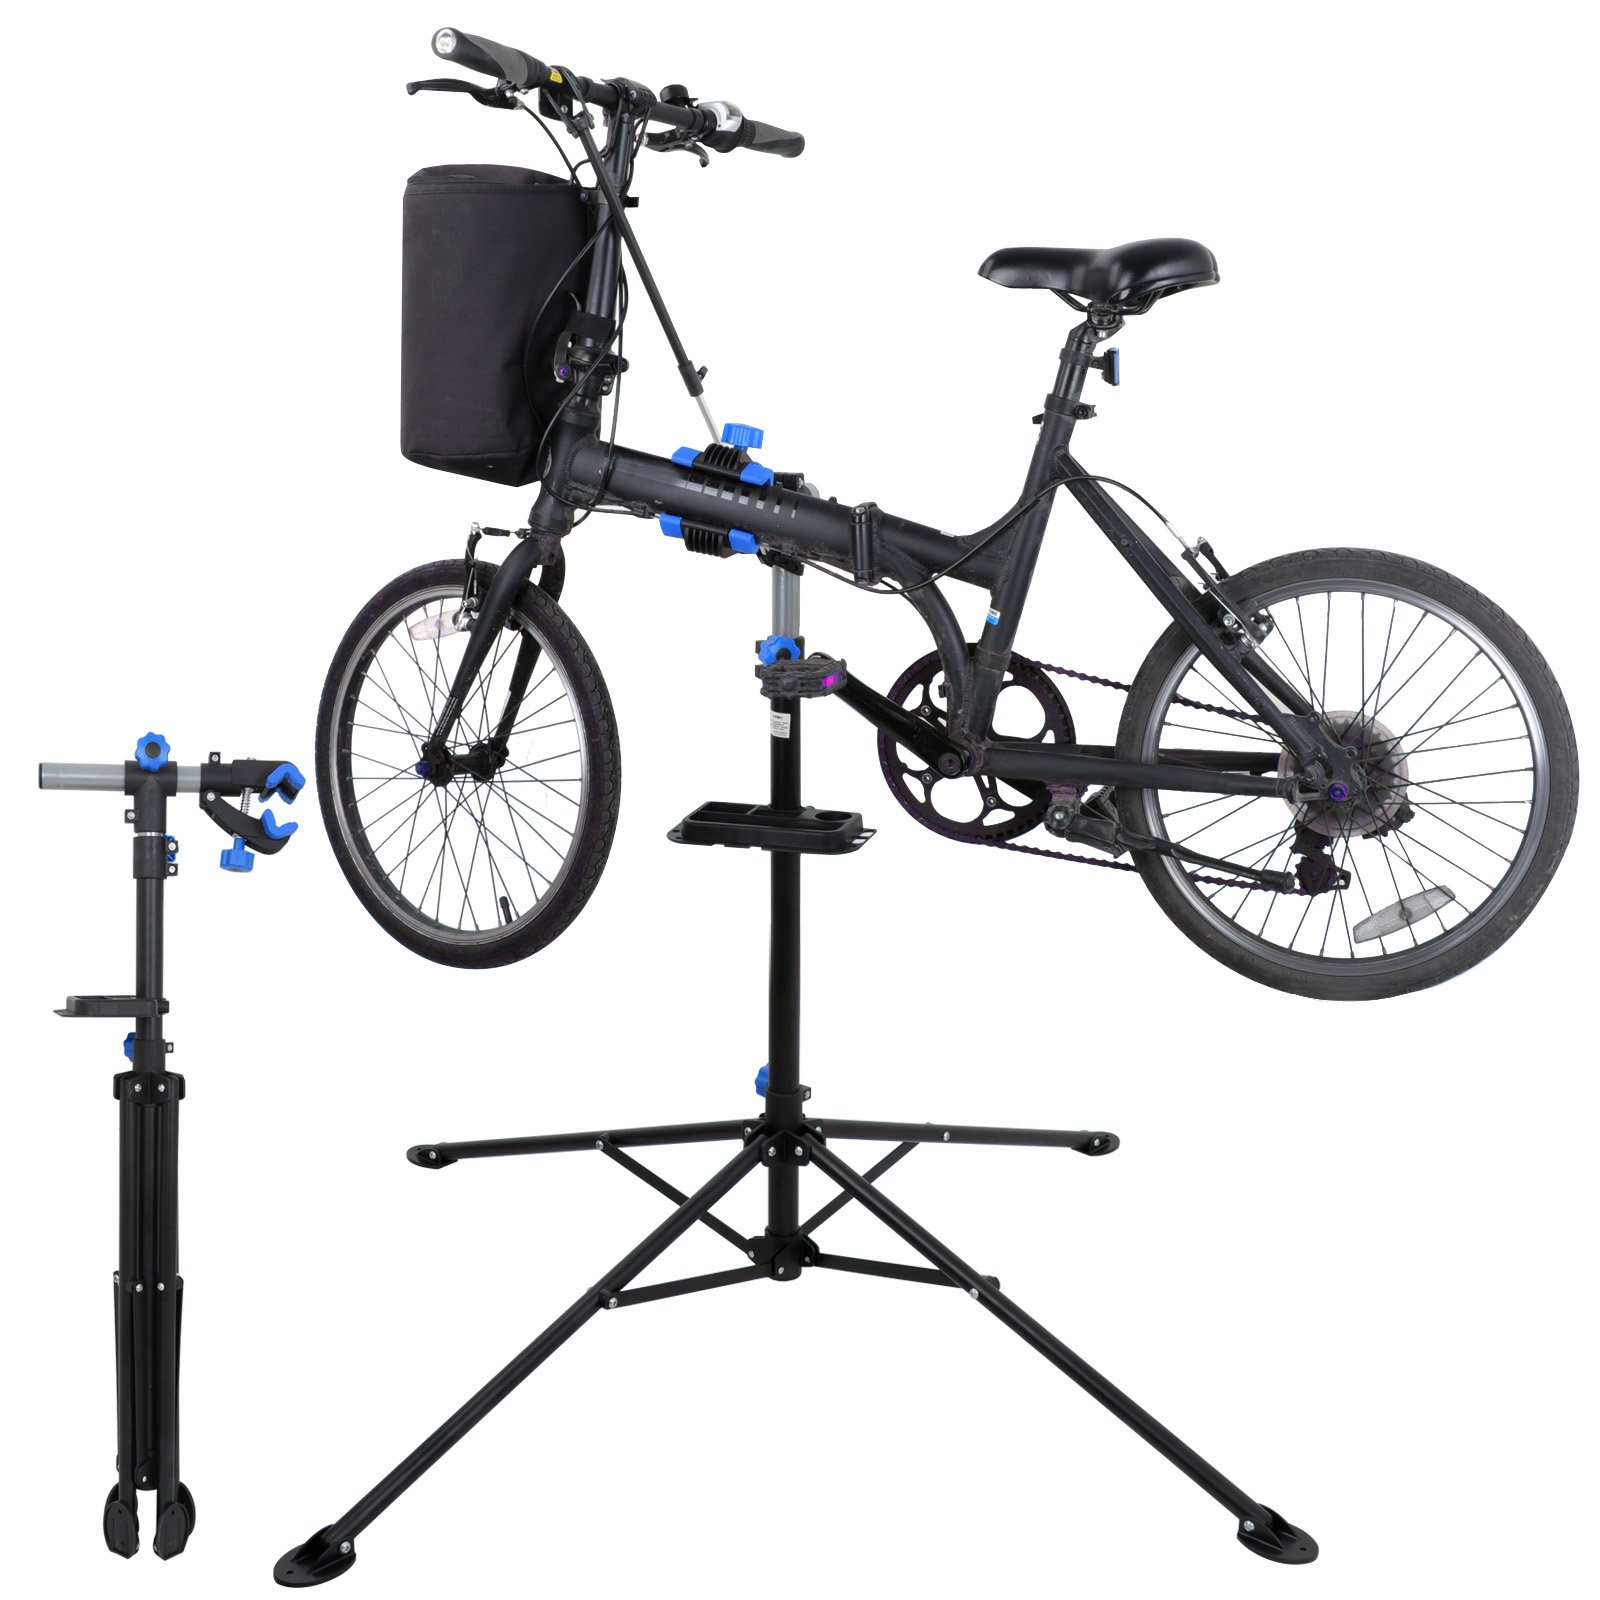 ZENY Adjustable Mechanic Bike Repair Stand Bicycle Maintenance Rack Workstand with Tool Tray 360 Degree Rotate Telescopic Arm Cycle by ZENY